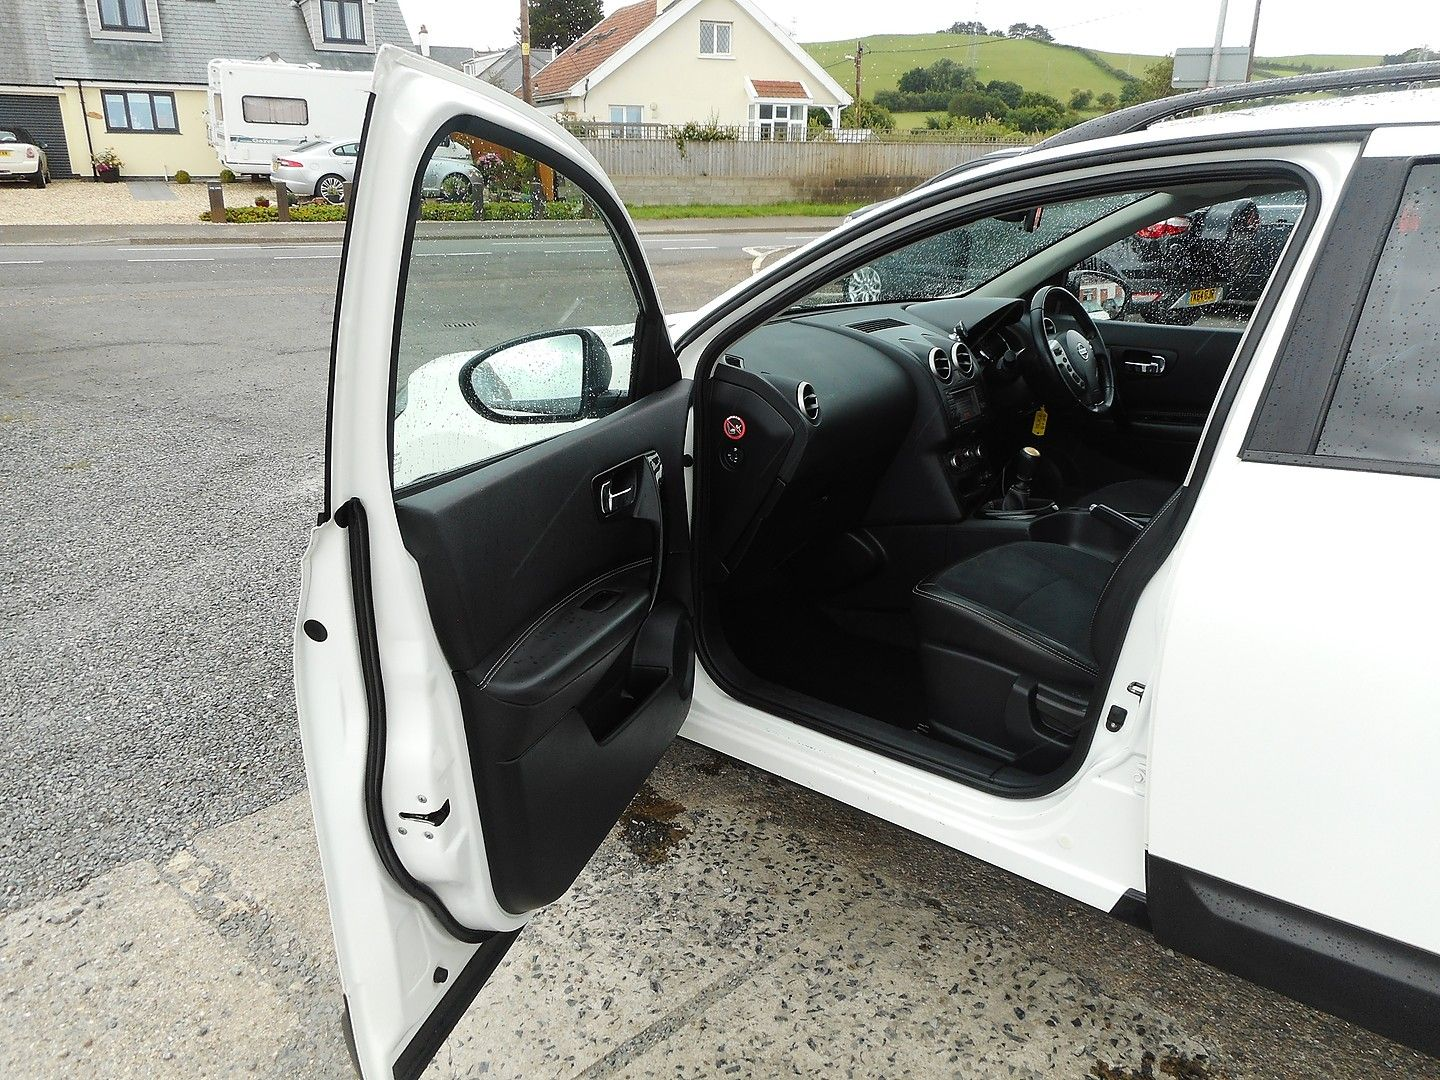 NISSAN QASHQAI 360 1.5 dCi 7 SEATER (2013) - Picture 8